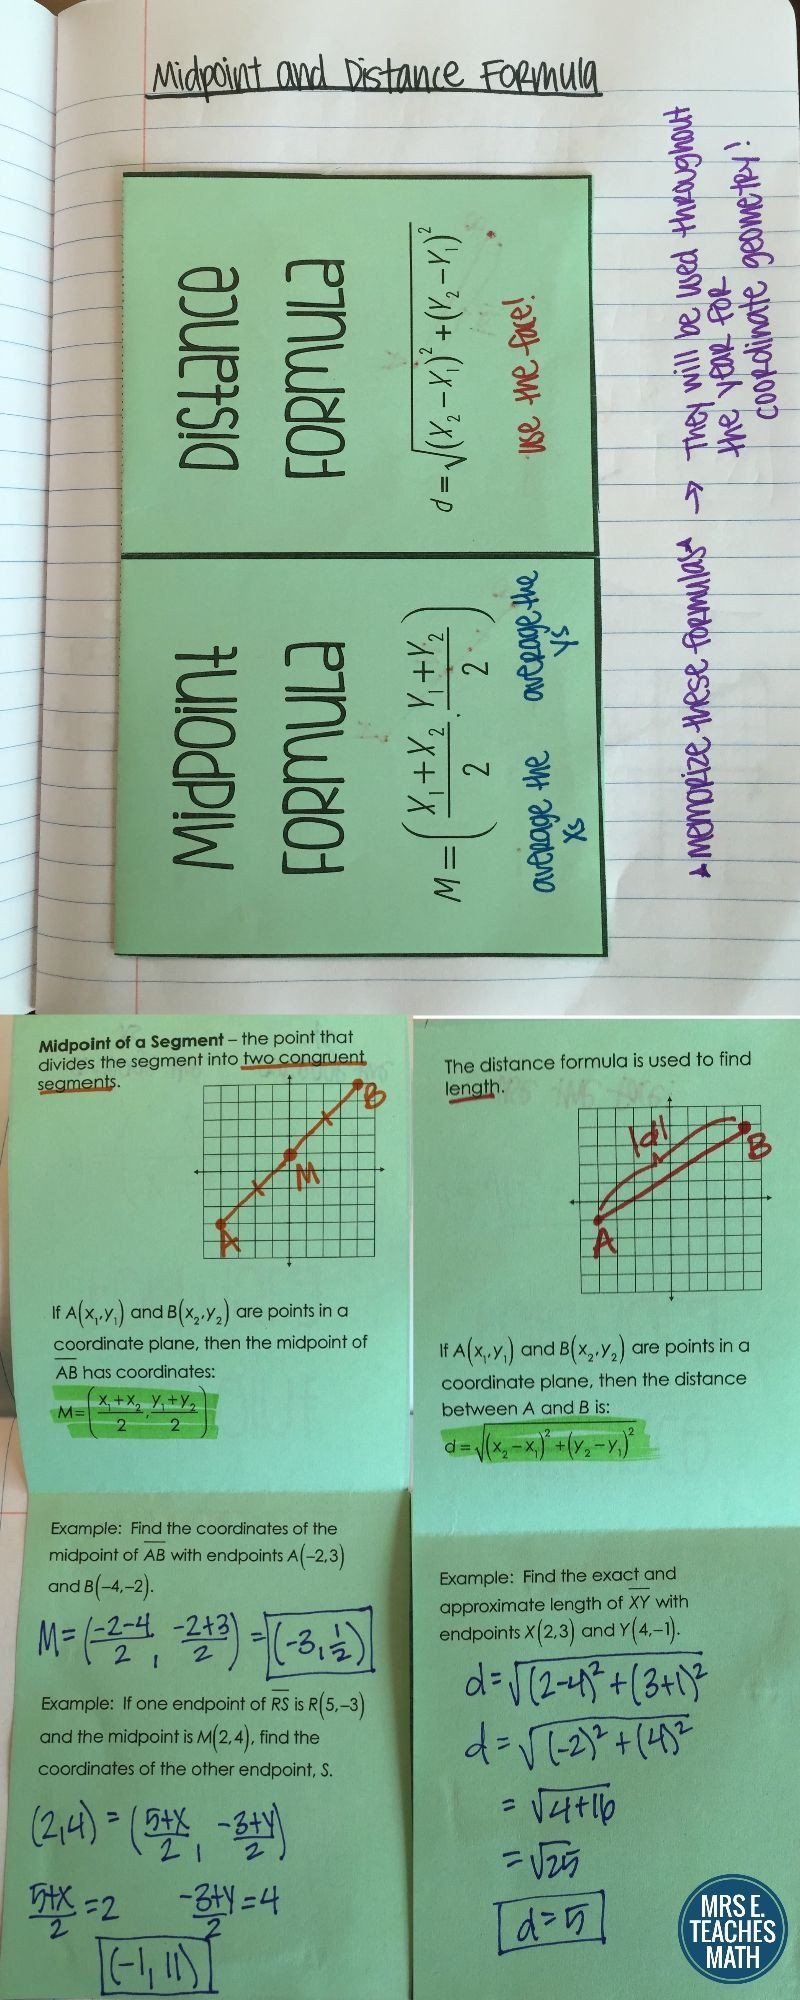 Distance And Midpoint Worksheet Answers Midpoint And Distance Formula Foldable In 2020 Midpoint Formula Math Interactive Notebook Teaching Geometry